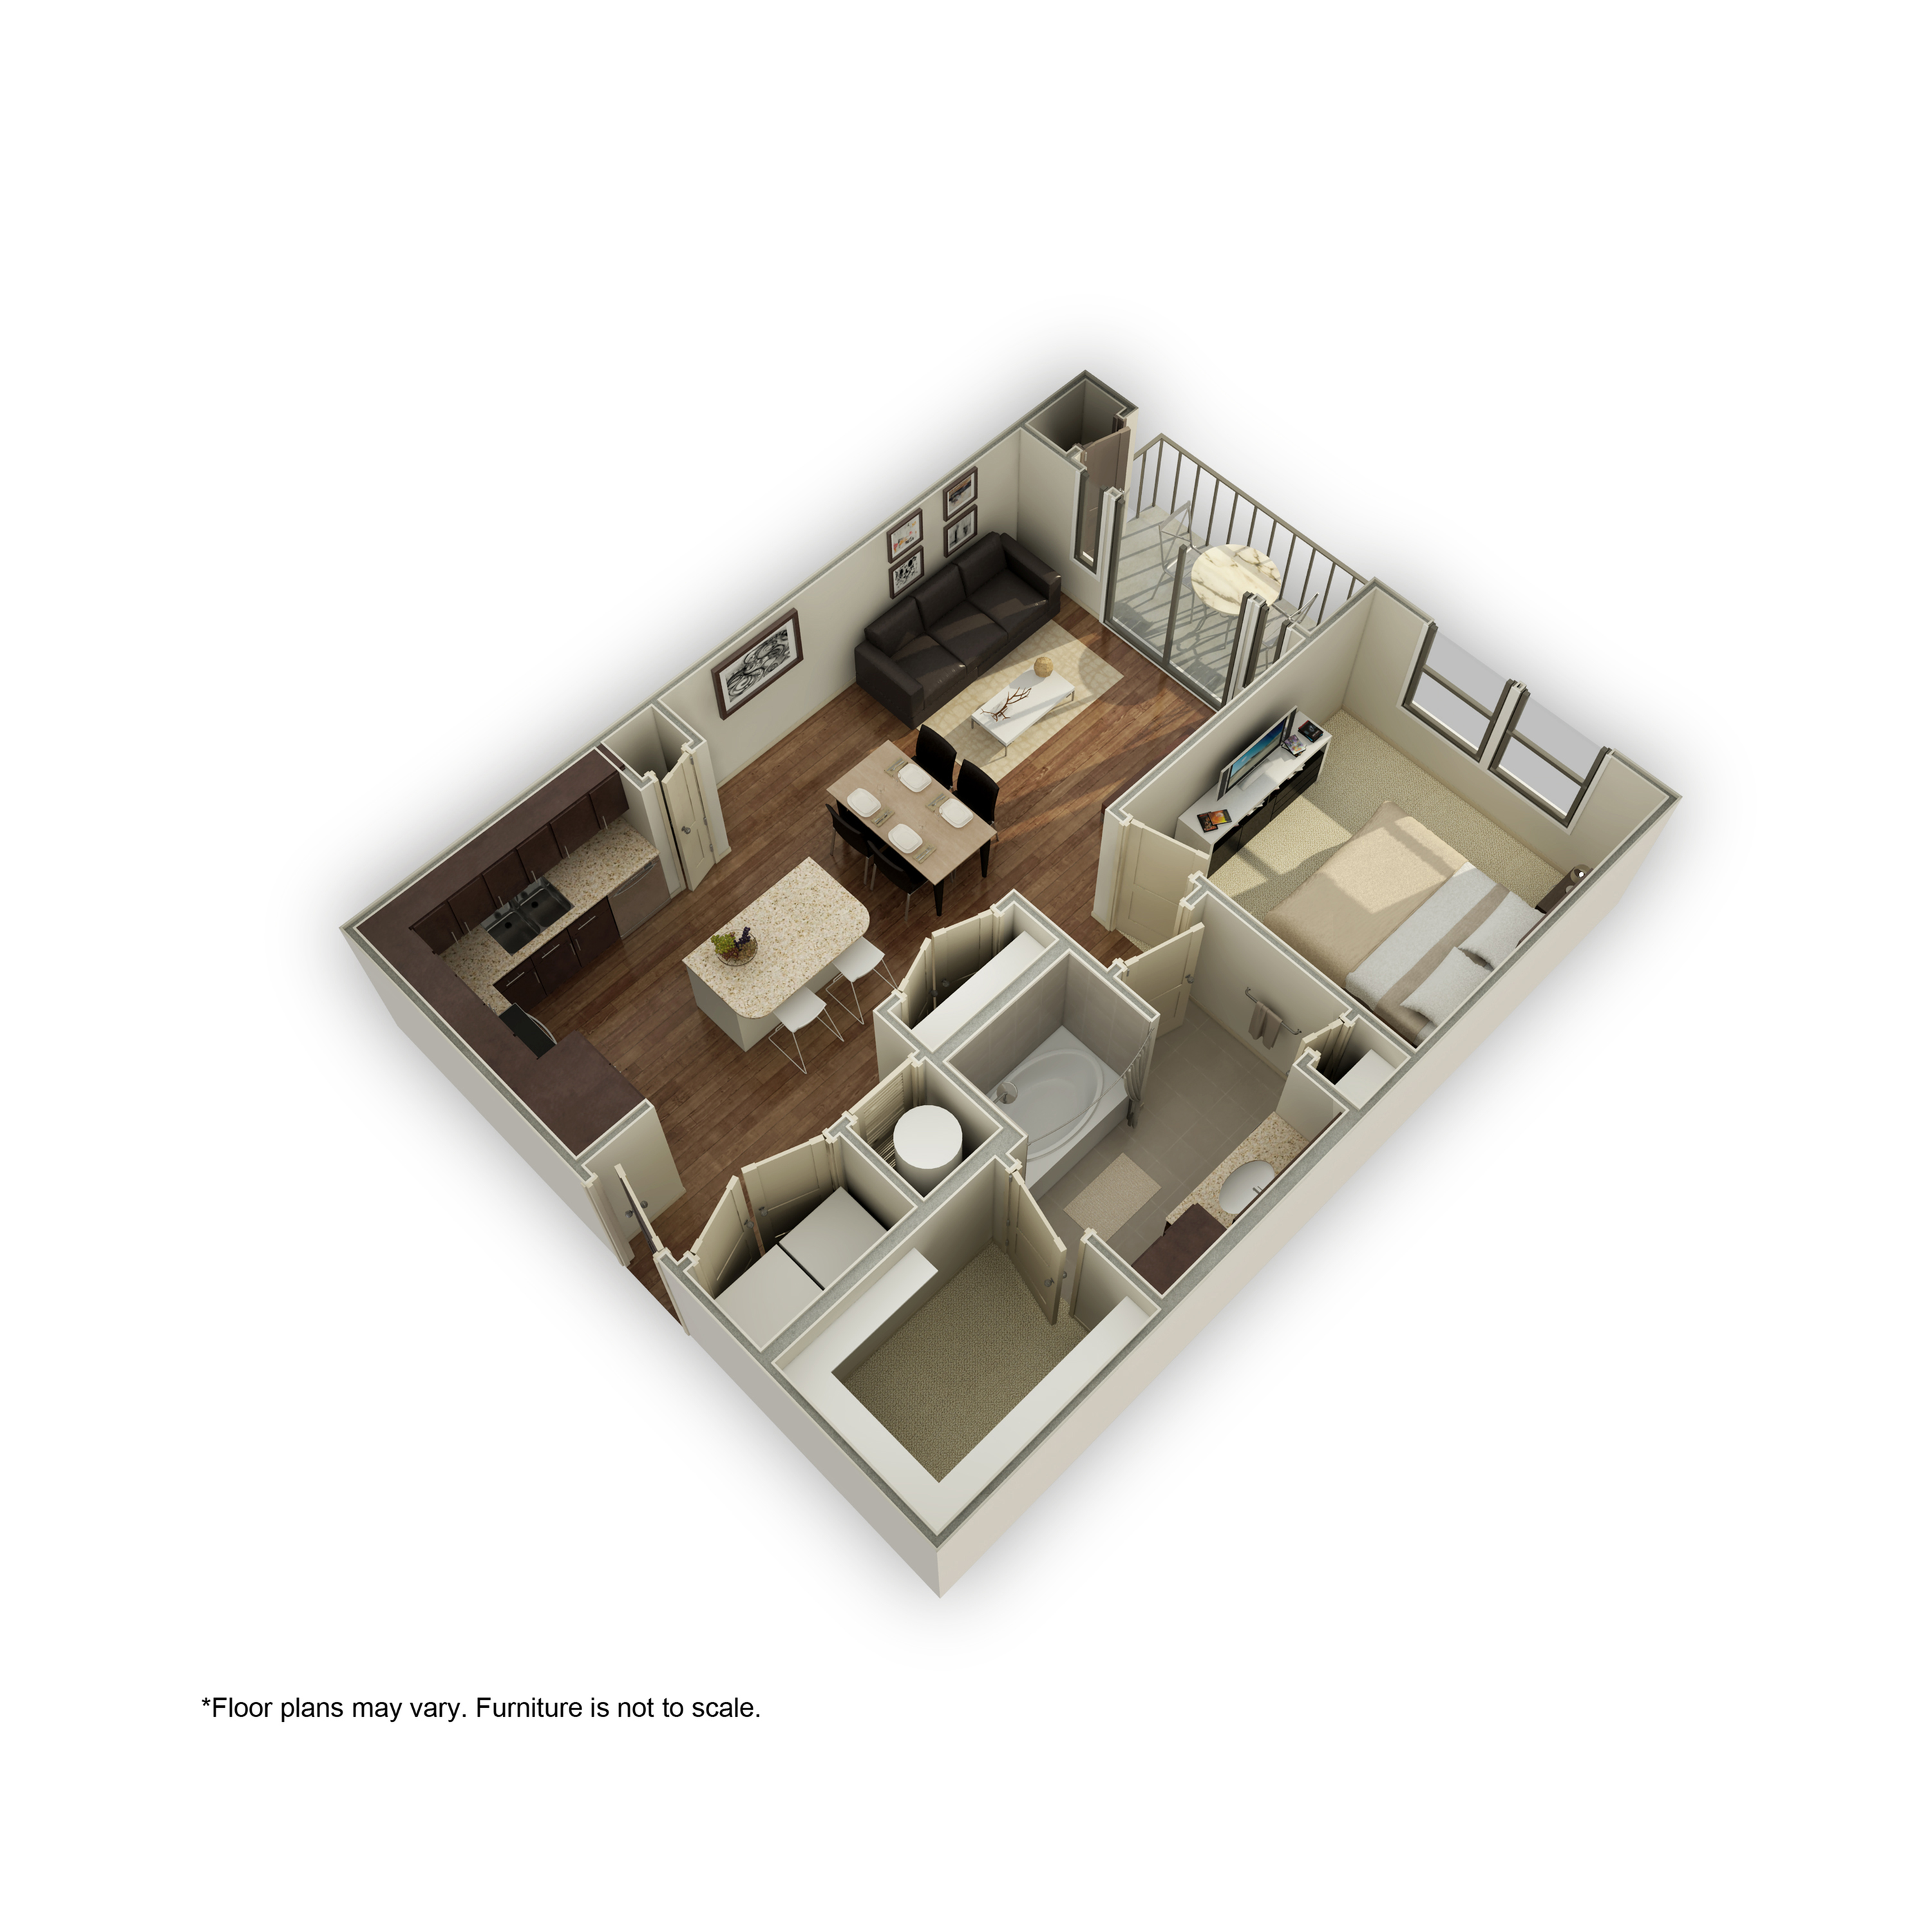 3800-A4 3D Floor Plan | 1 Bedroom with 1 Bath | 746 Square Feet | 3800 Main | Apartment Homes